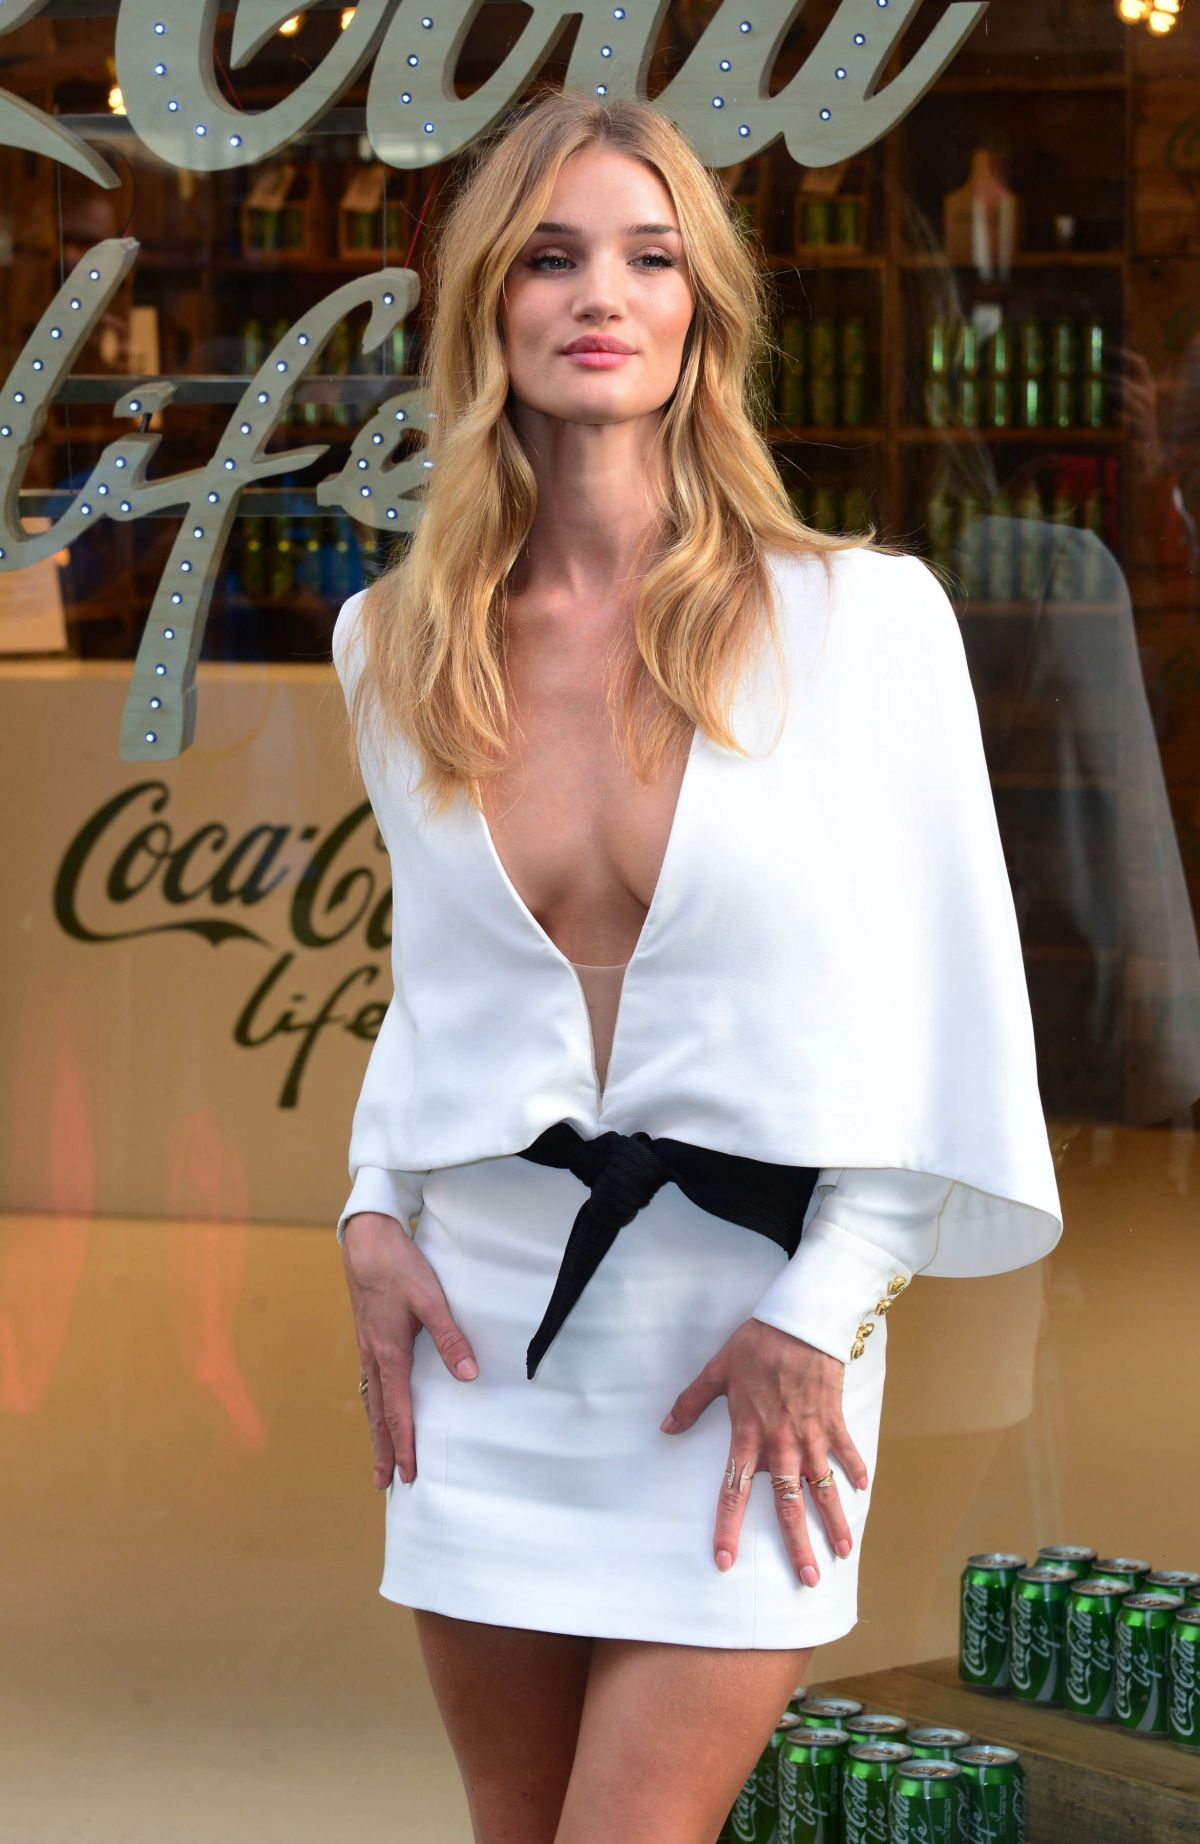 rosie-huntington-whiteley-at-coca-cola-life-launch-in-london_1